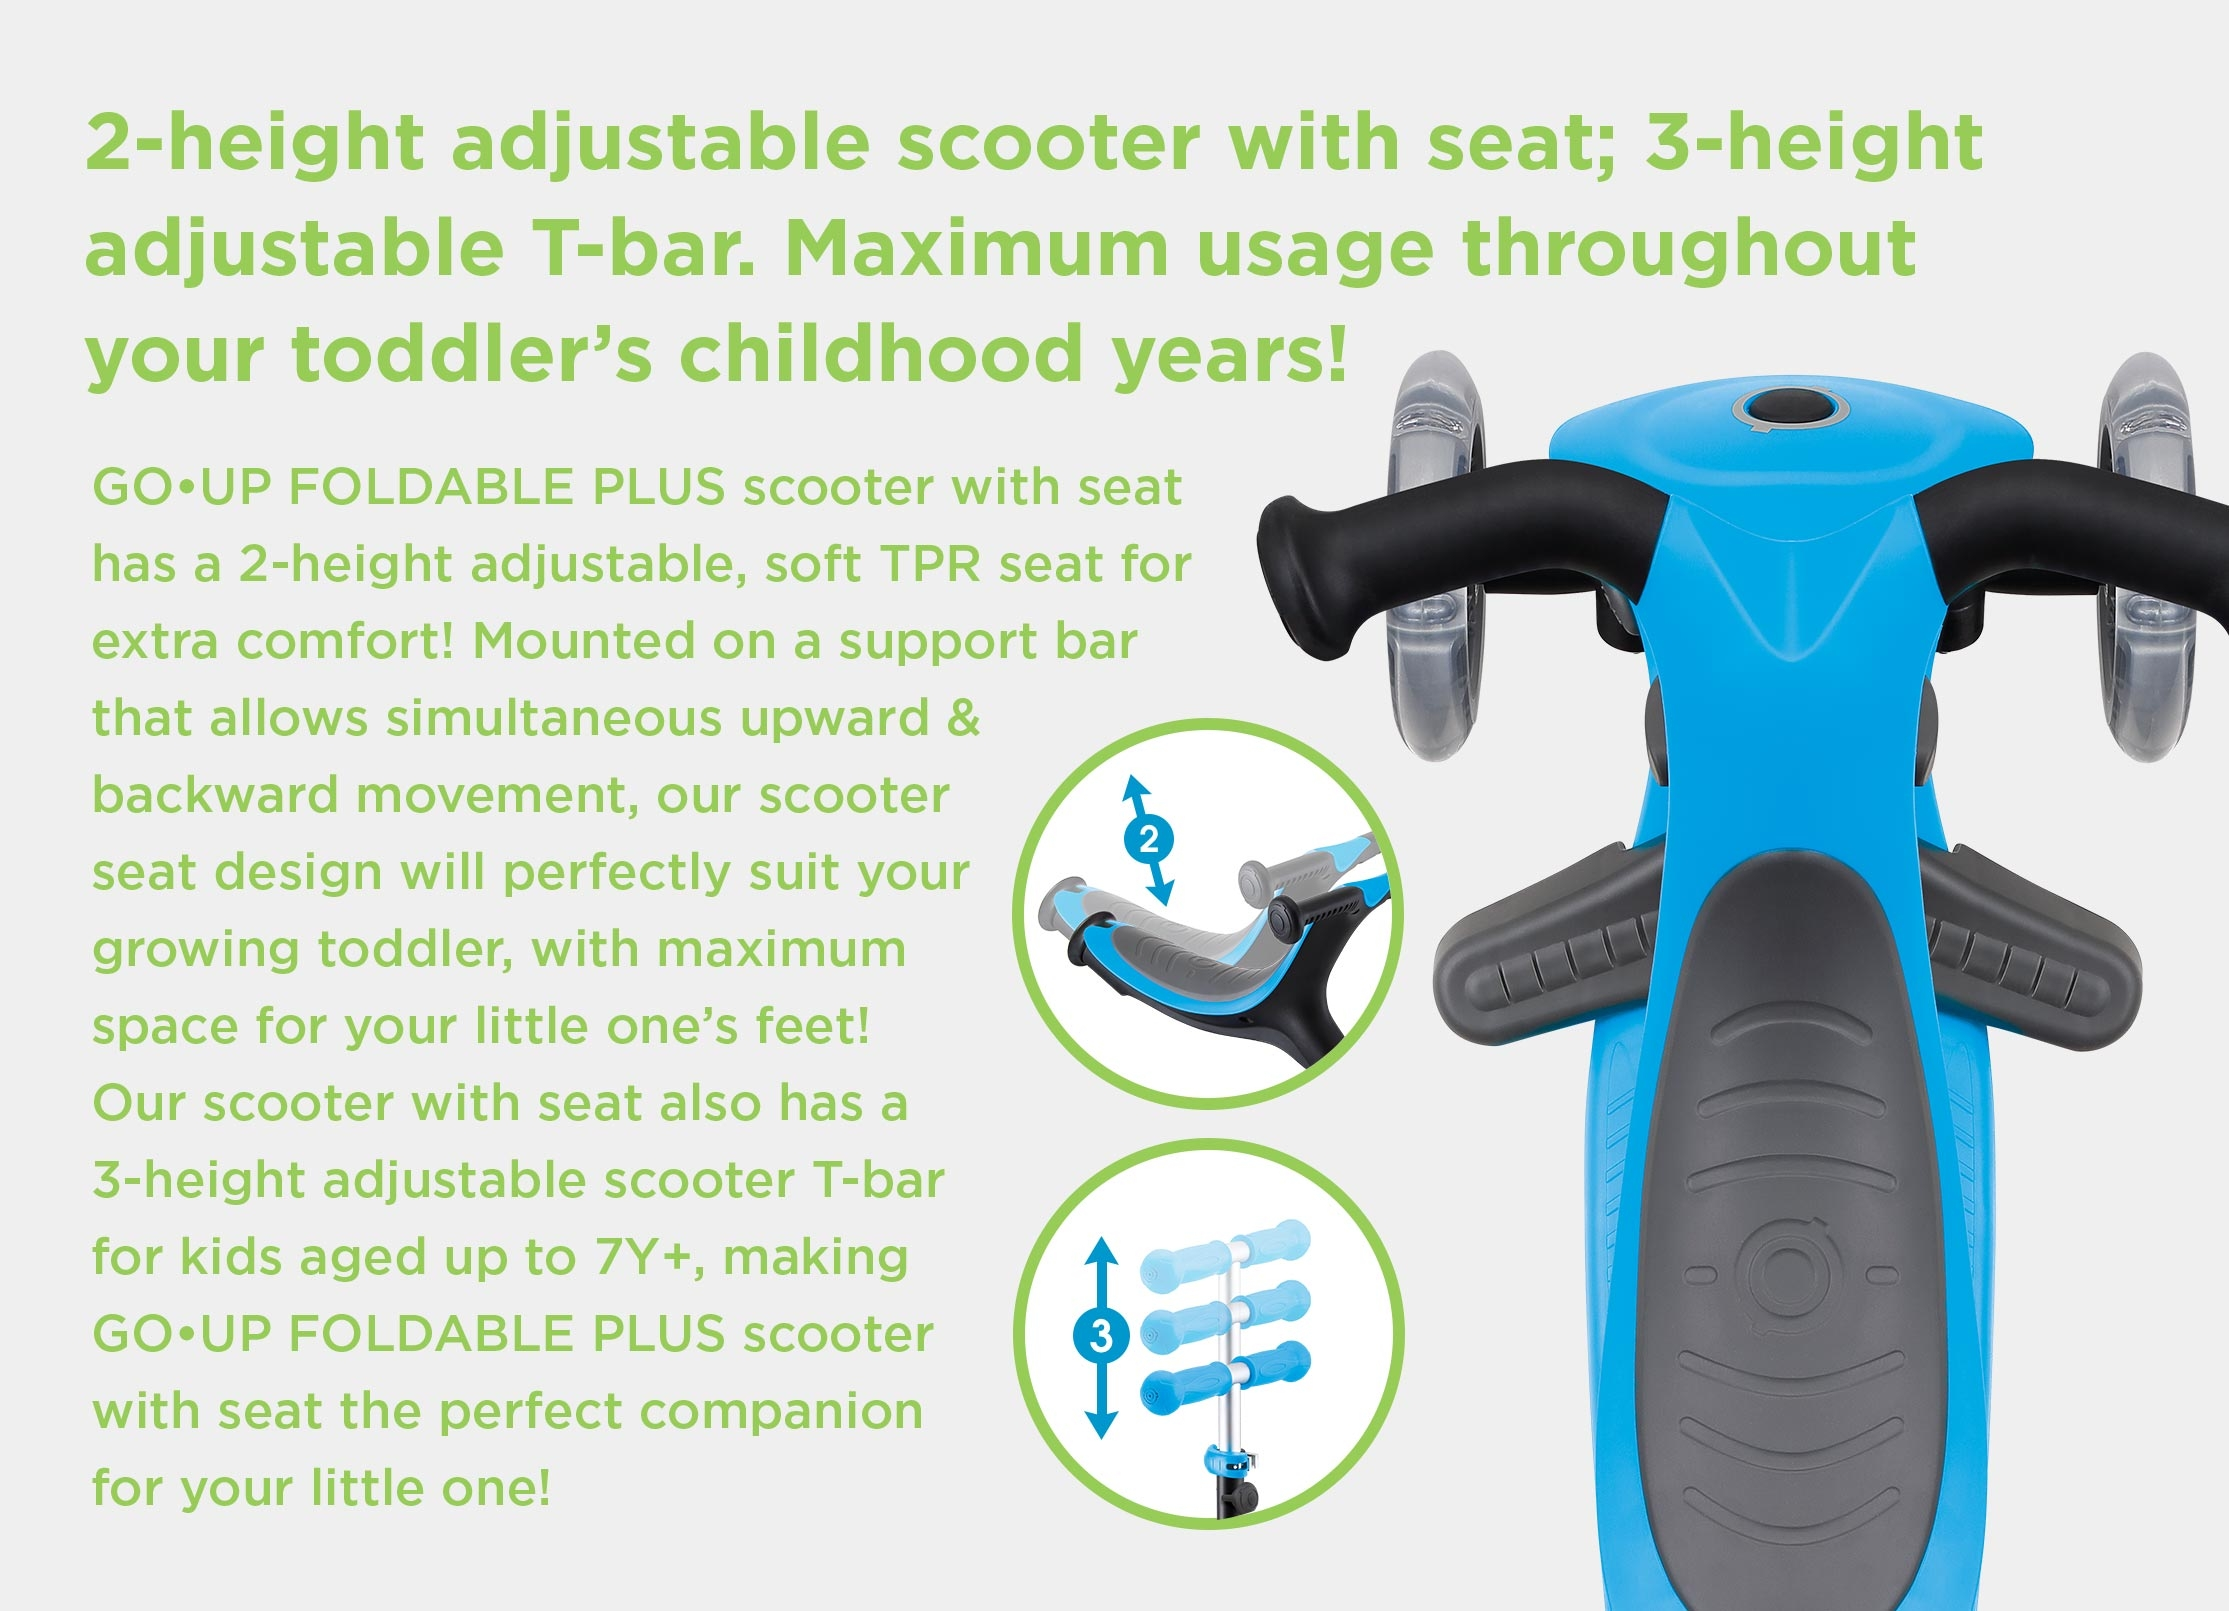 GO UP FOLDABLE PLUS is the best scooter for toddlers designed to suit your child's growhth